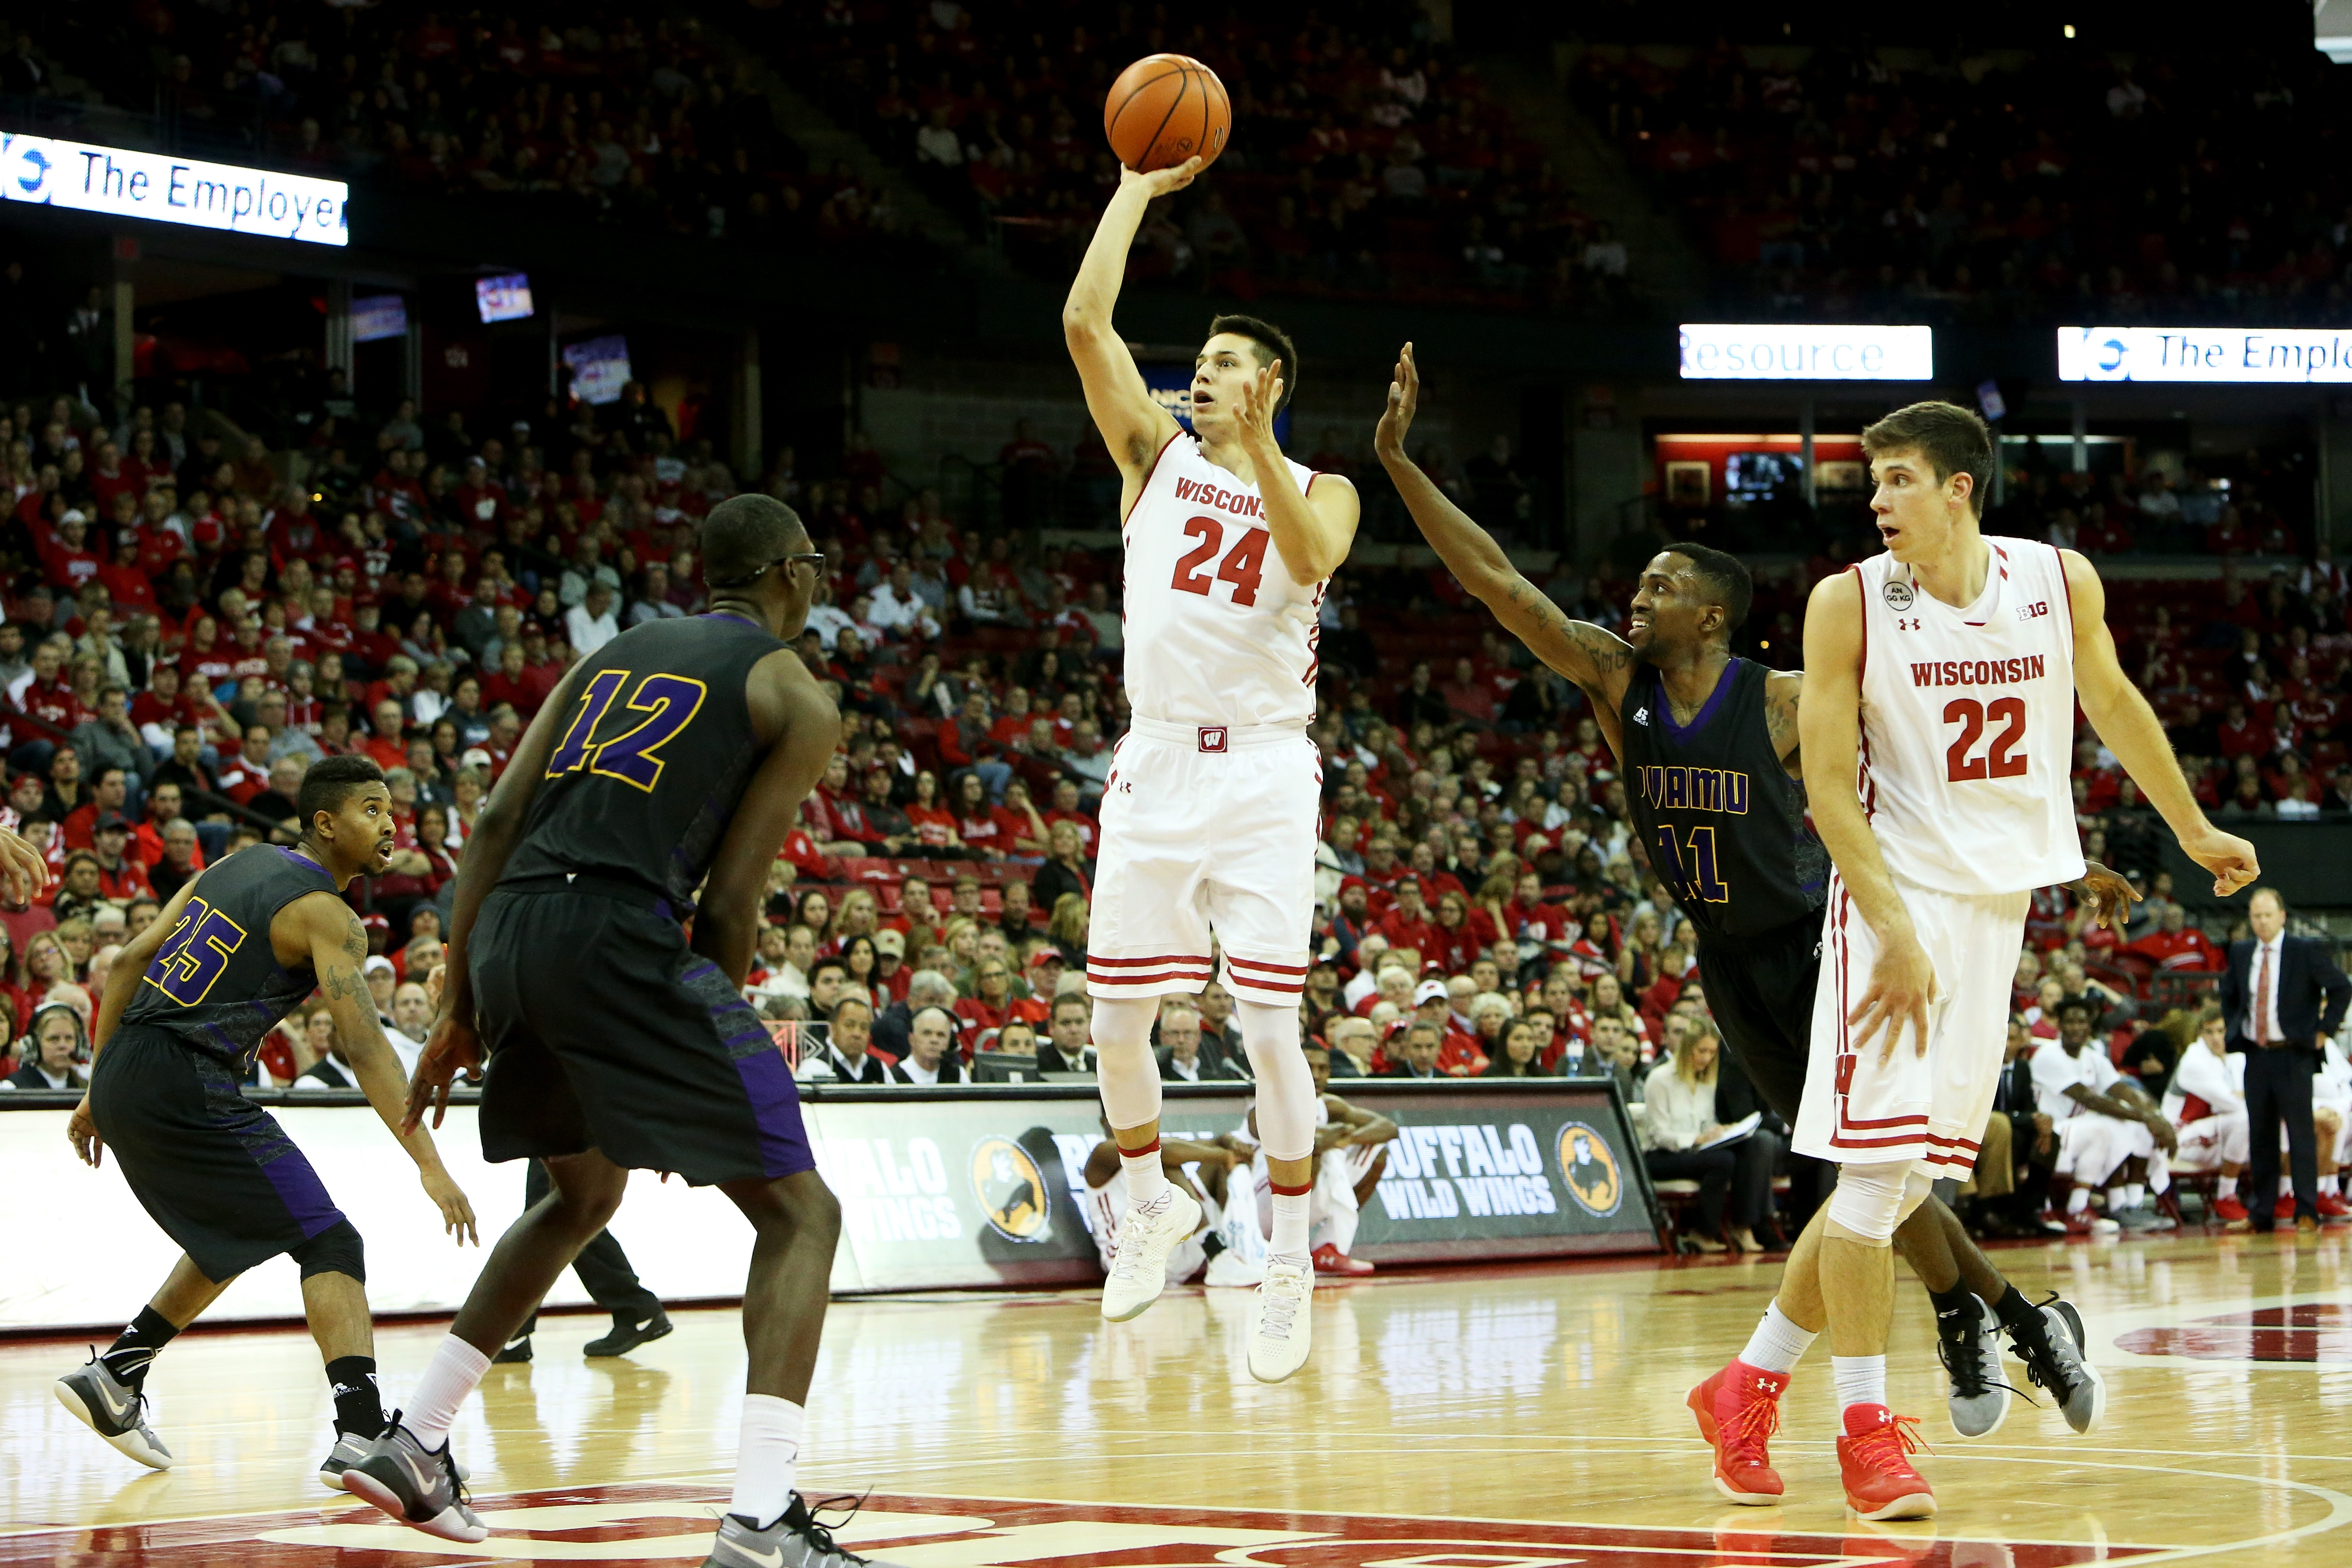 Badger Basketball Preview: Oklahoma Sooners' Edition